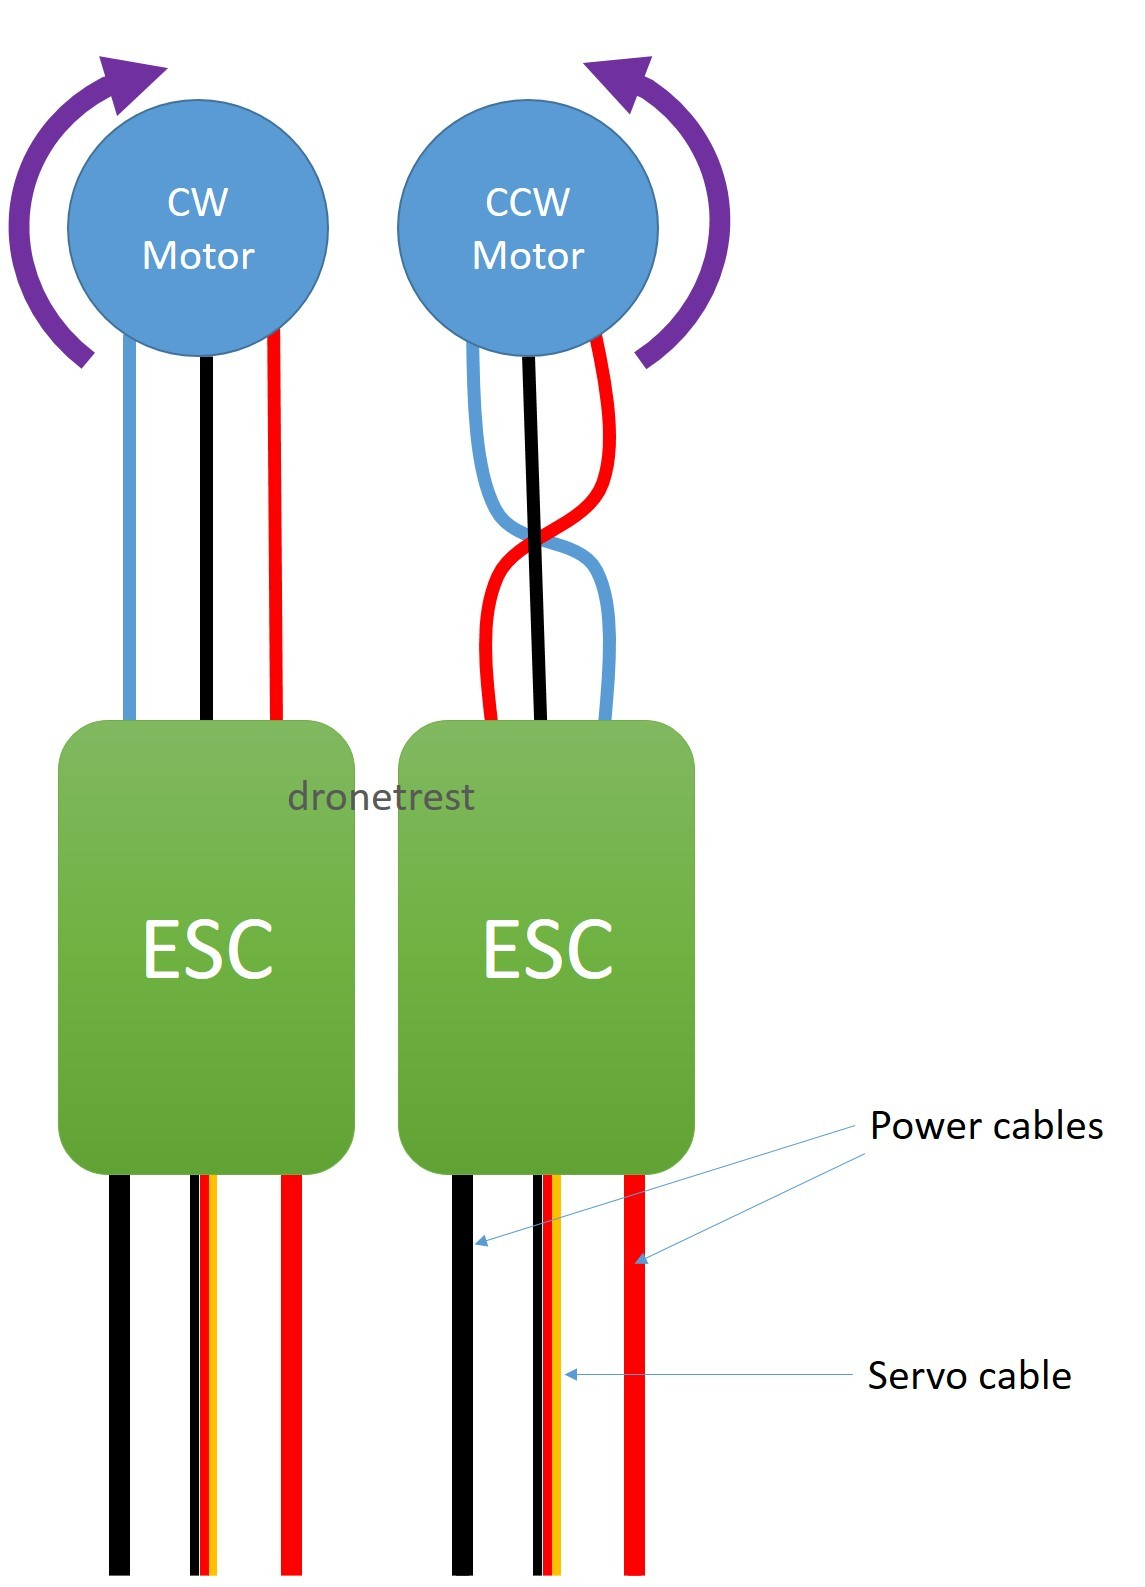 Esc To Motor Connection Guide How Reverse Your Direction Two Way Switching Schematic Wiring Diagram 3 Wire Control Guide1145x1587 104 Kb